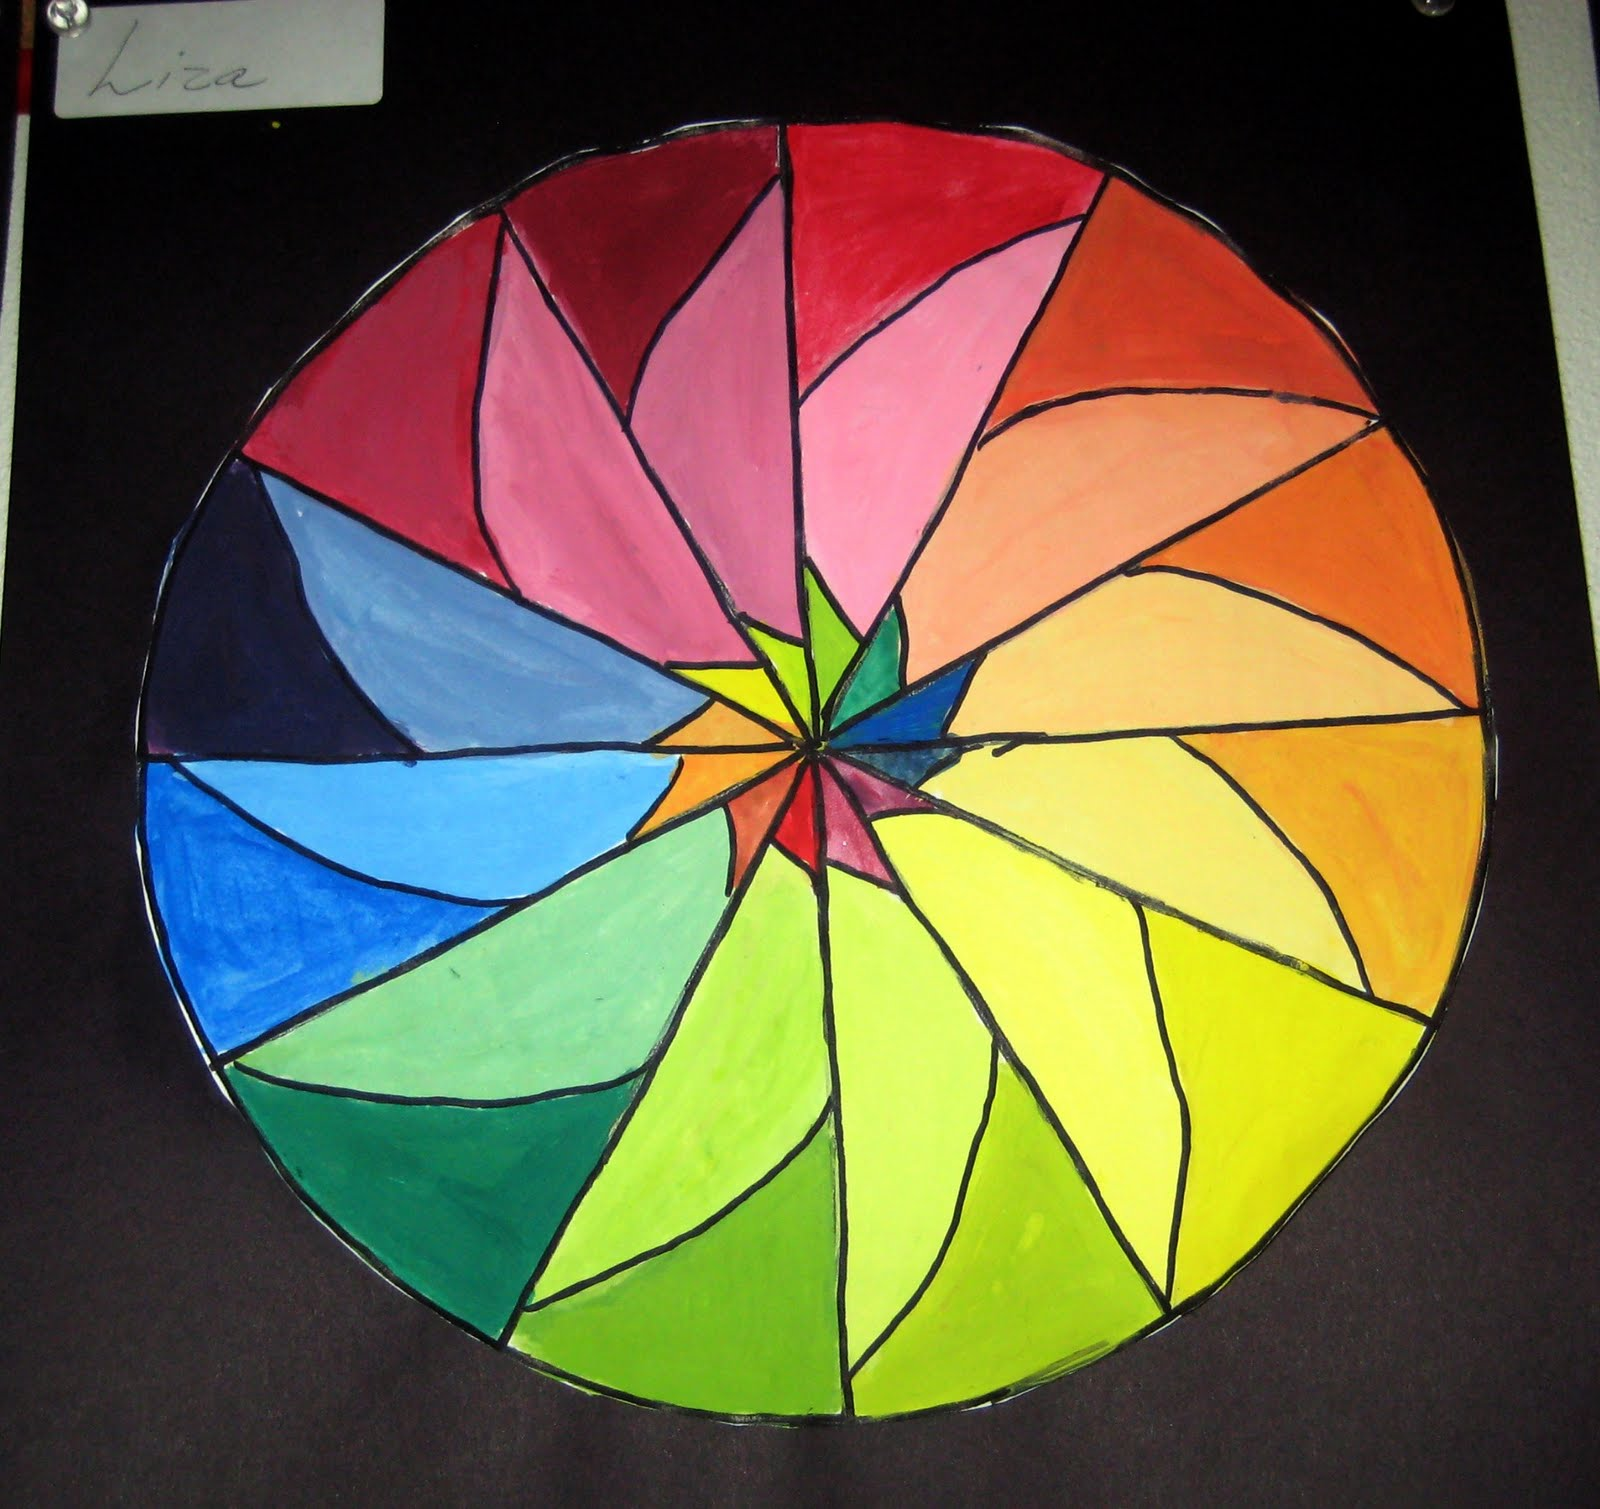 6th And 7th Grade Completed Their Complex Color Wheels Each Wheel Showed Understanding Of Primary Secondary Intermediate Complementary Colors